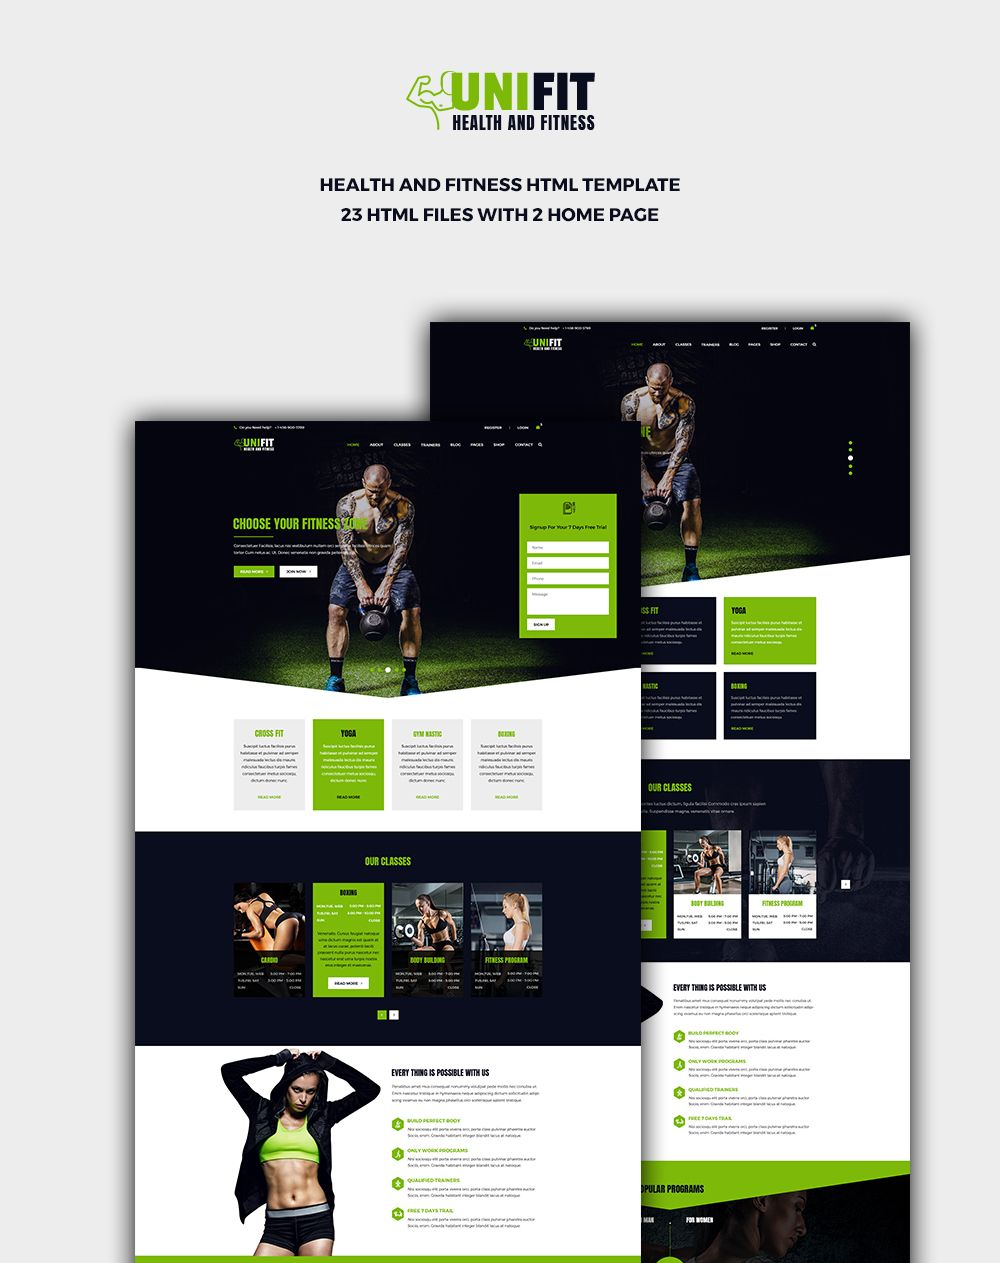 Unifit Health and Fitness HTML Template #AD #Health, #Unifit, #Fitness, #Template